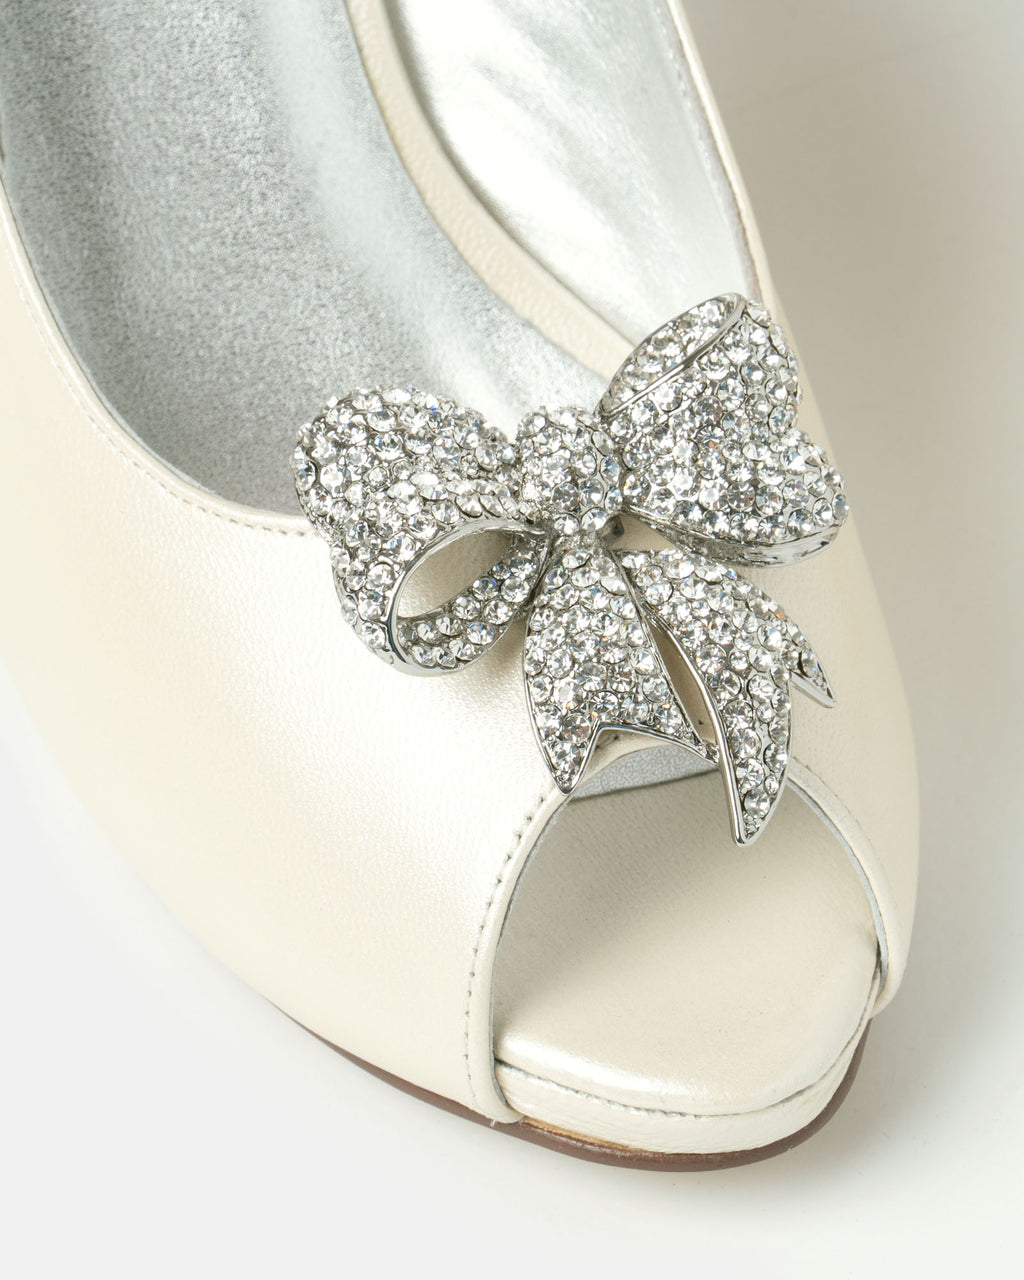 Izoa Bow Shoe Clips Silver Clear